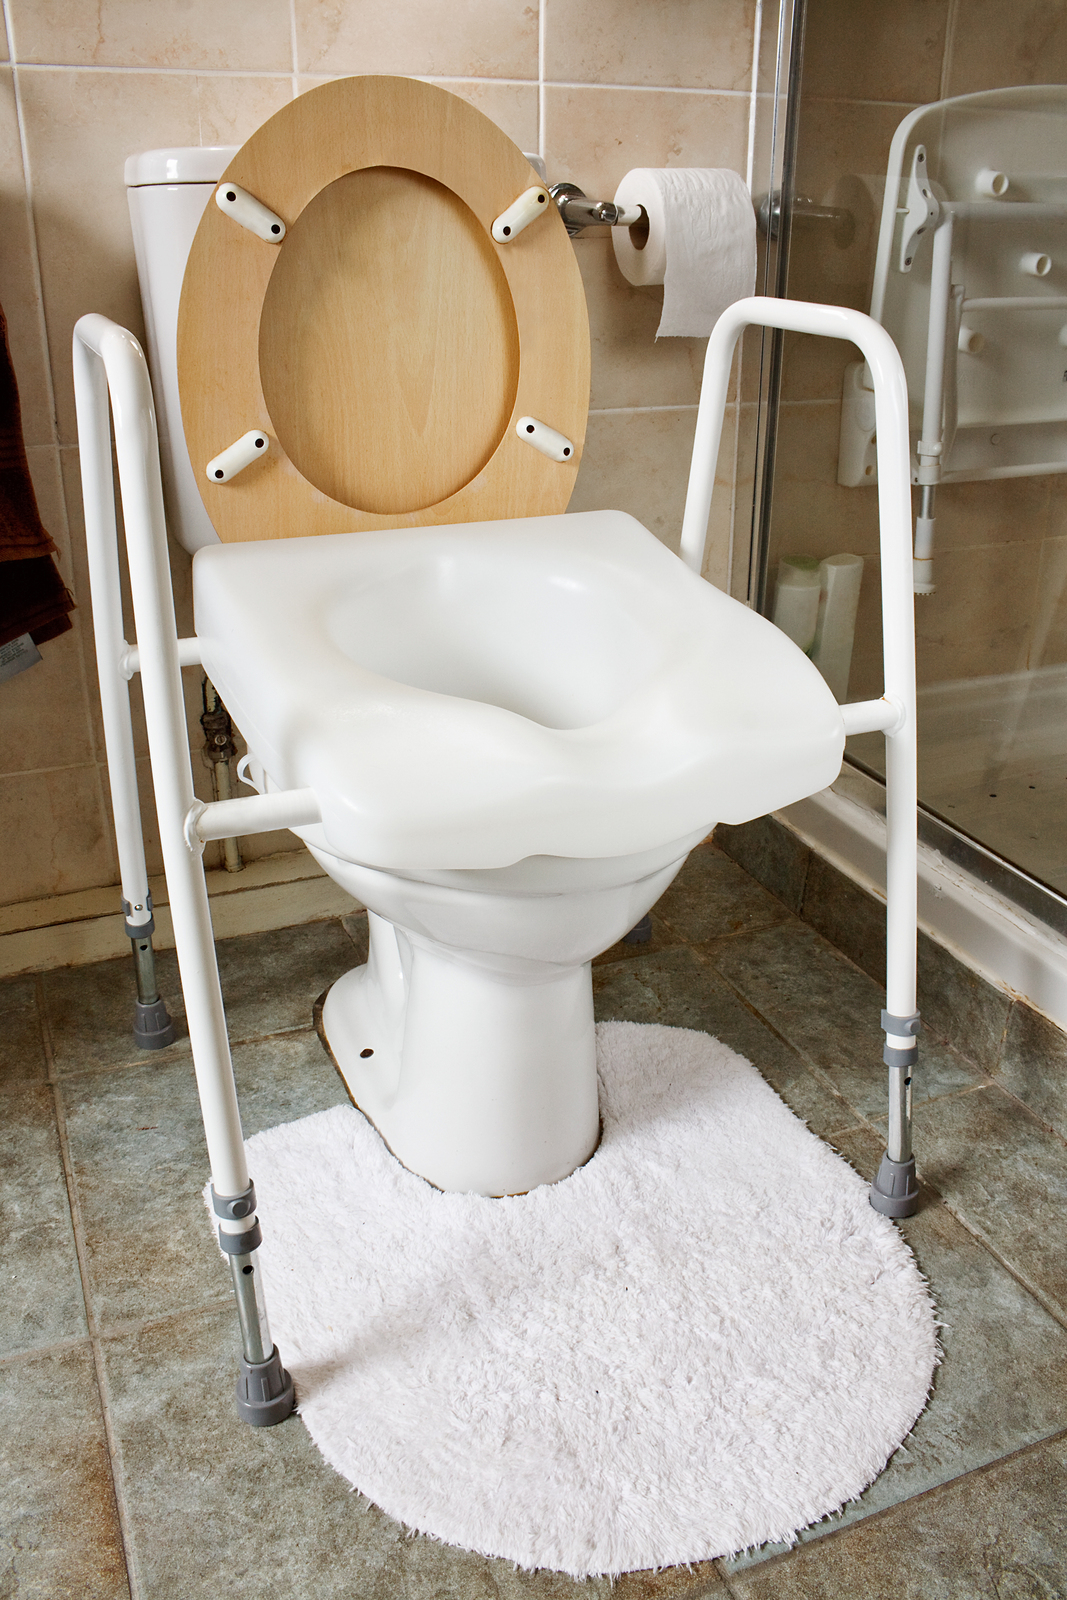 shower chair for elderly singapore tattoo senior care plan prepare now bathroom safety